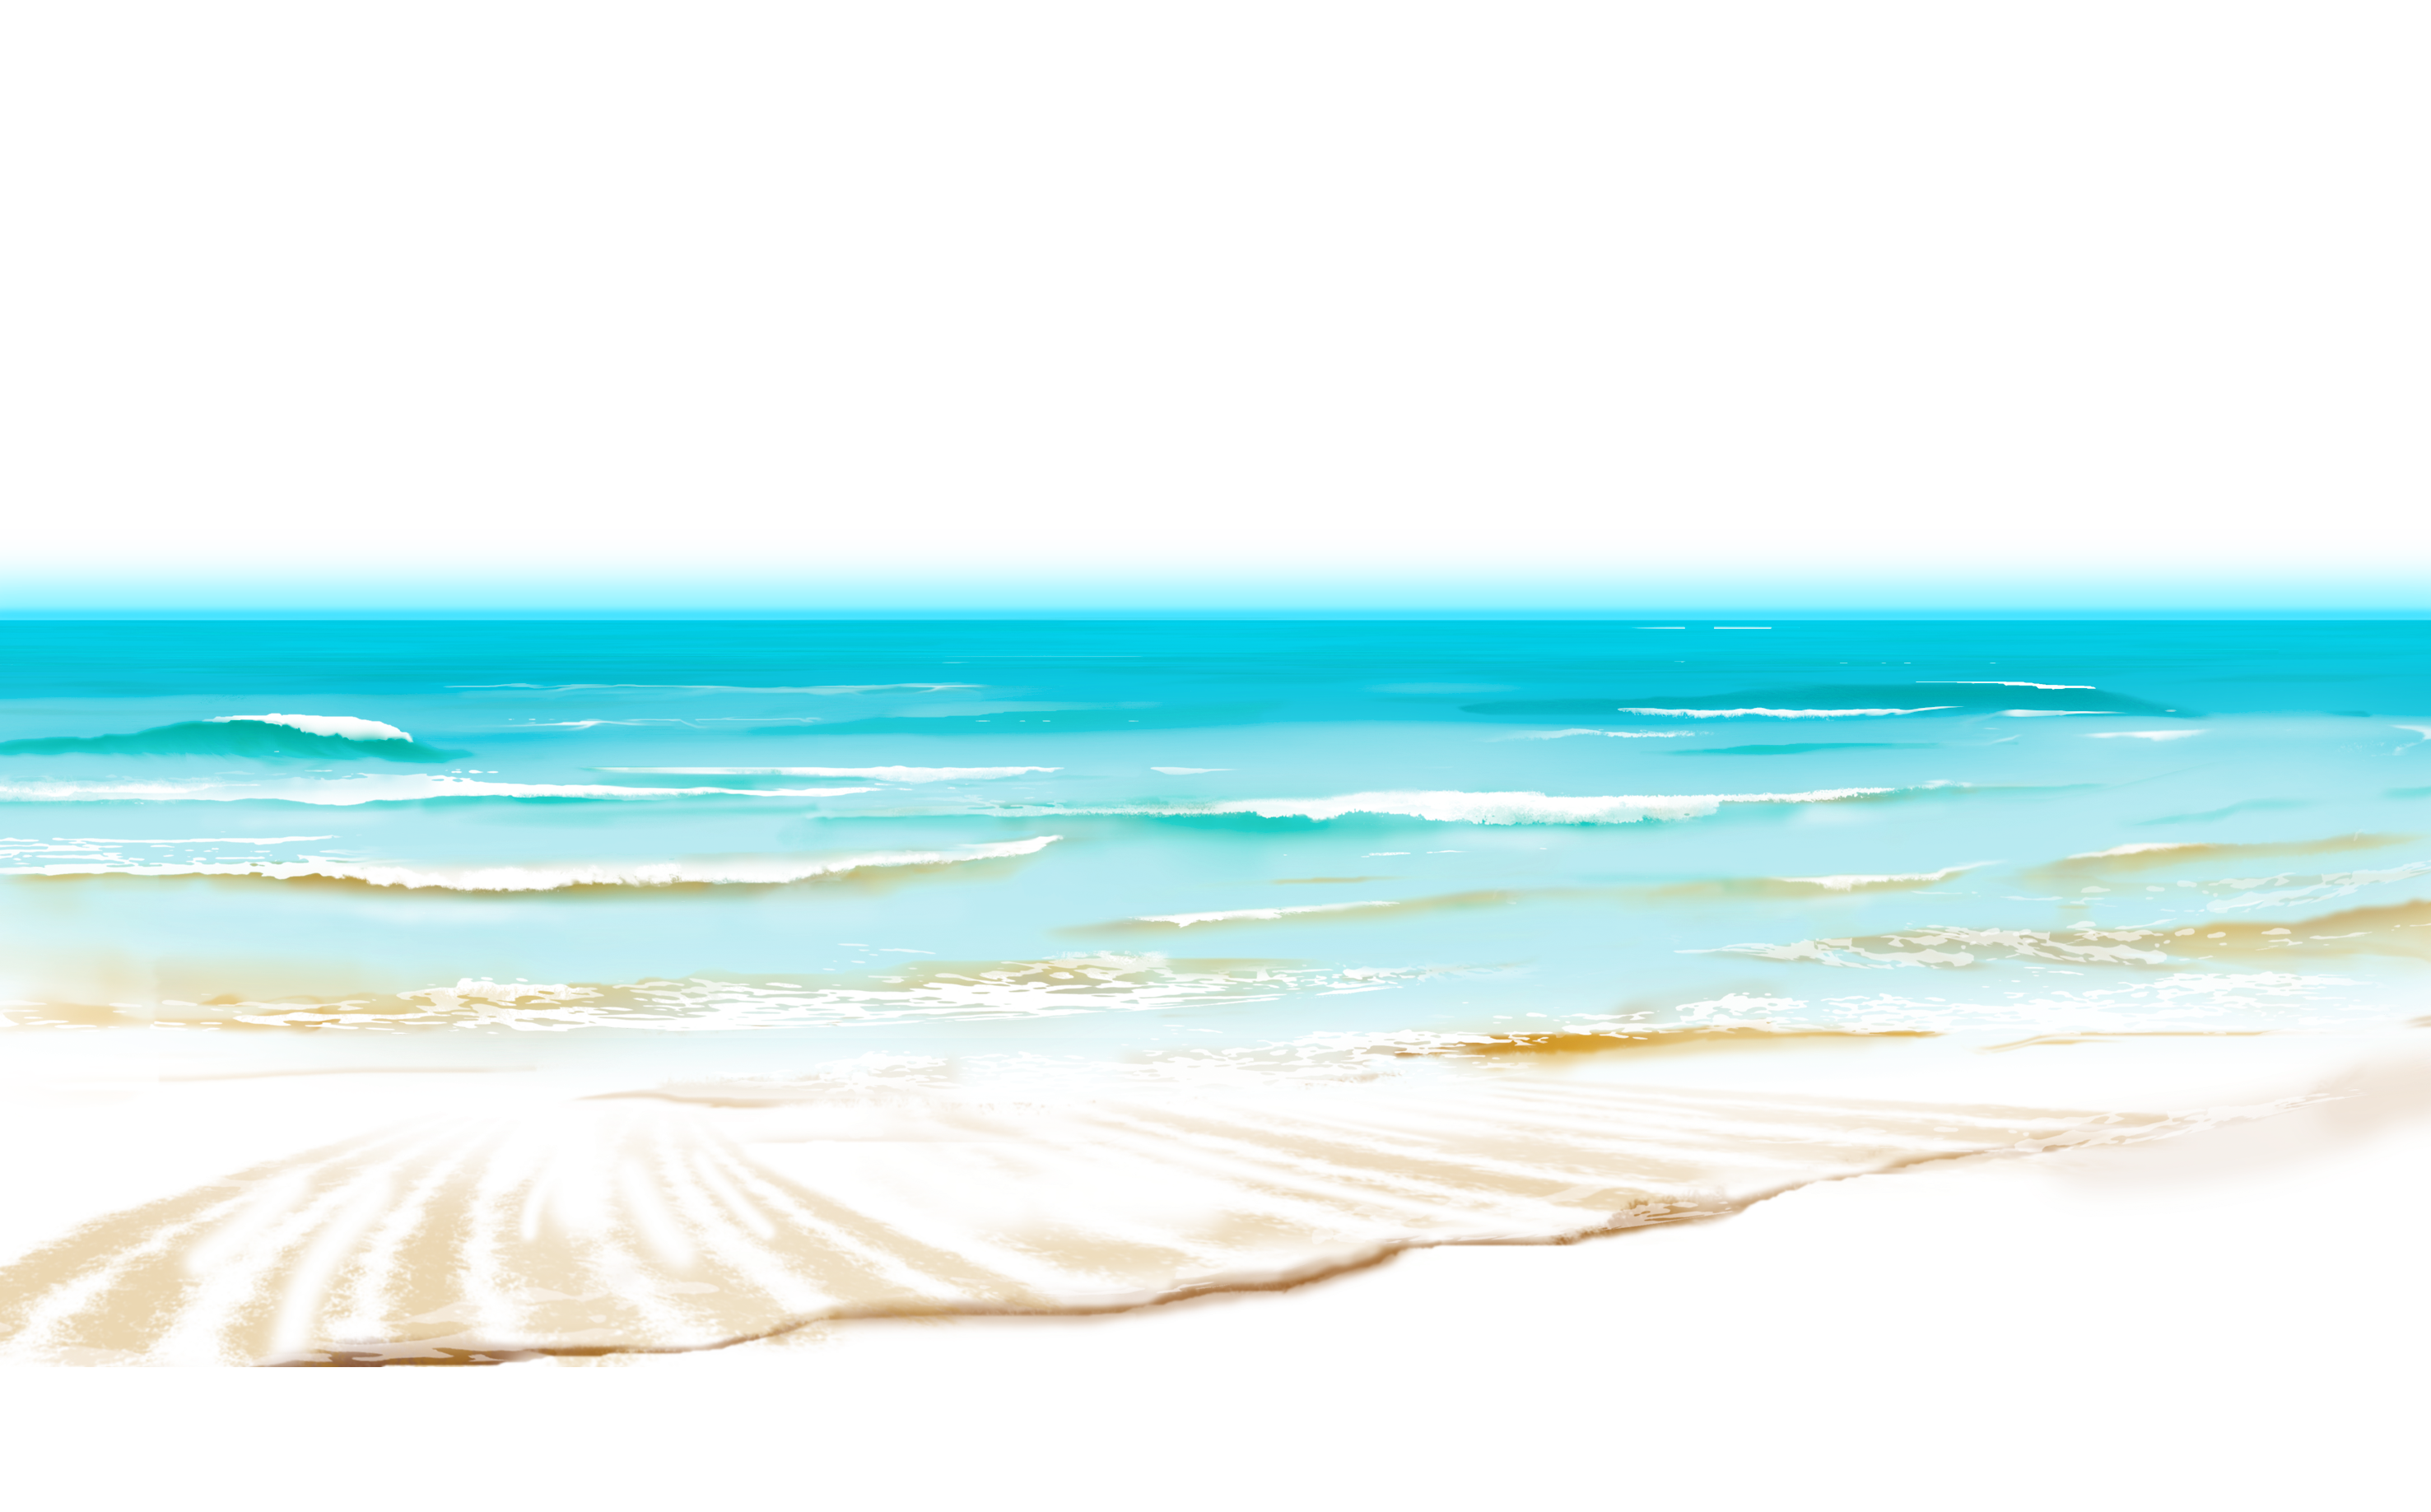 Sea Beach Ground Png Clipart Sea Beach Images Clip Art Photography Genres